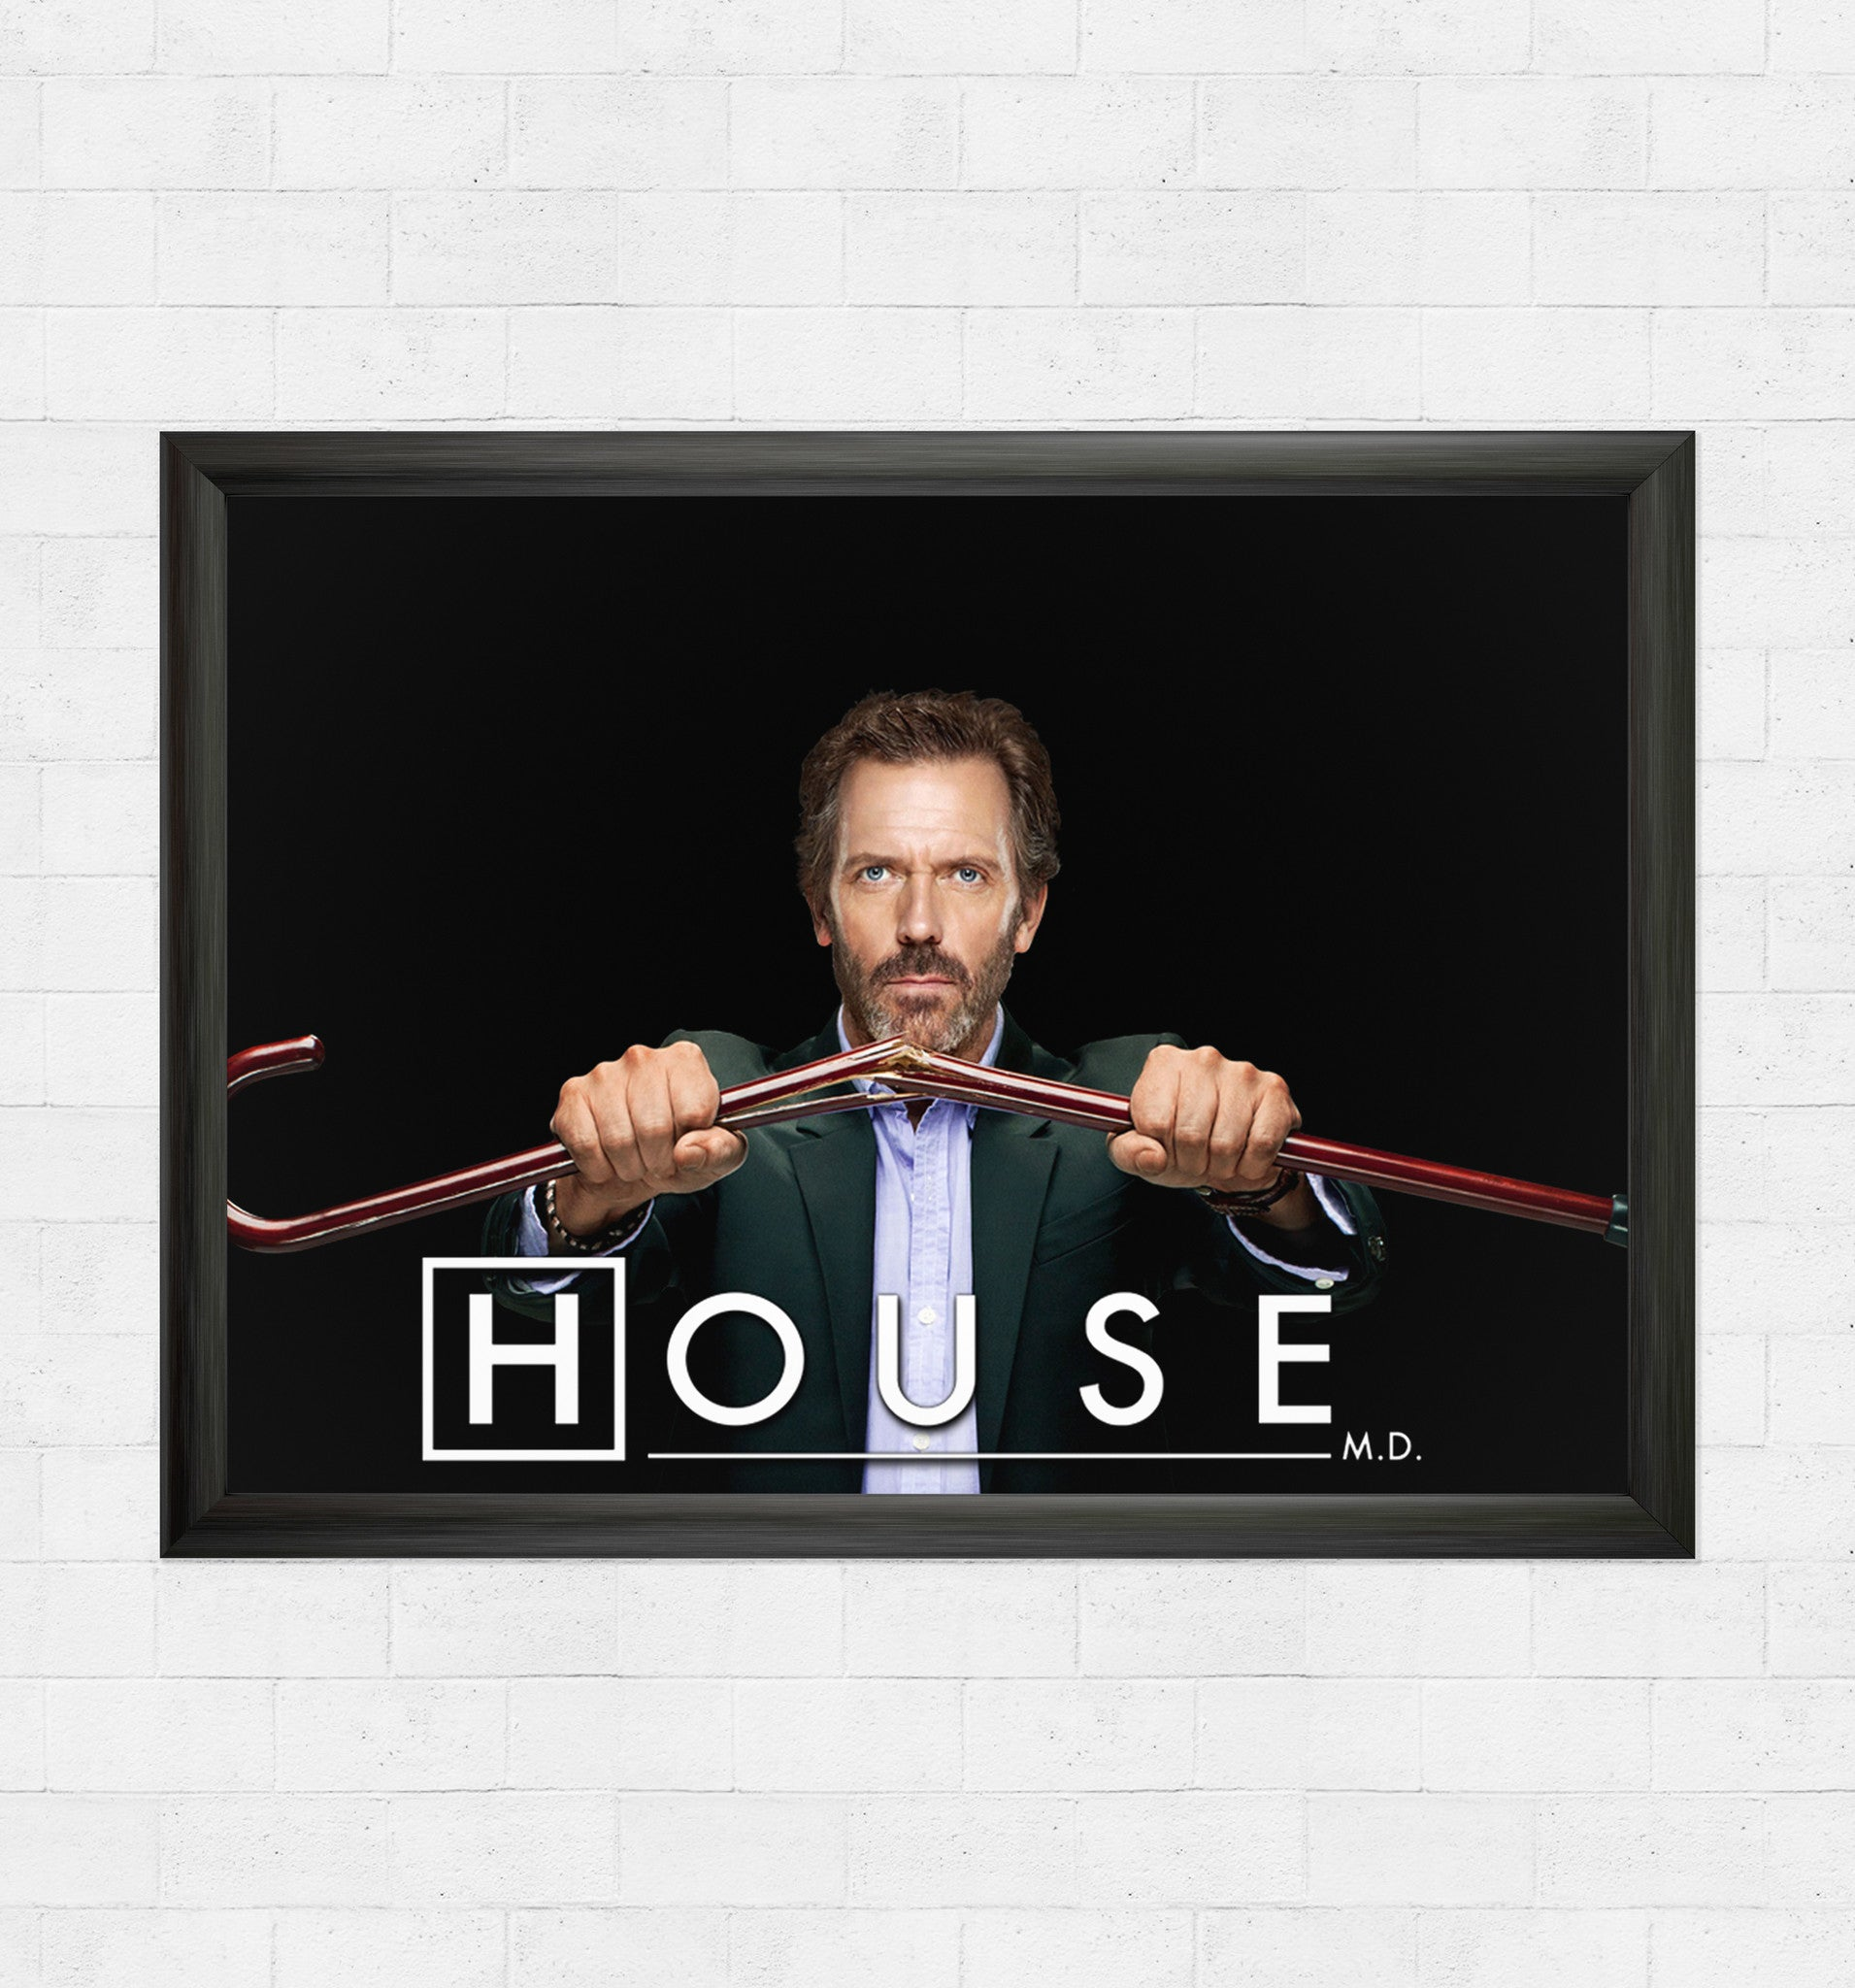 house md cane and able poster in india by sillypunter silly punter. Black Bedroom Furniture Sets. Home Design Ideas